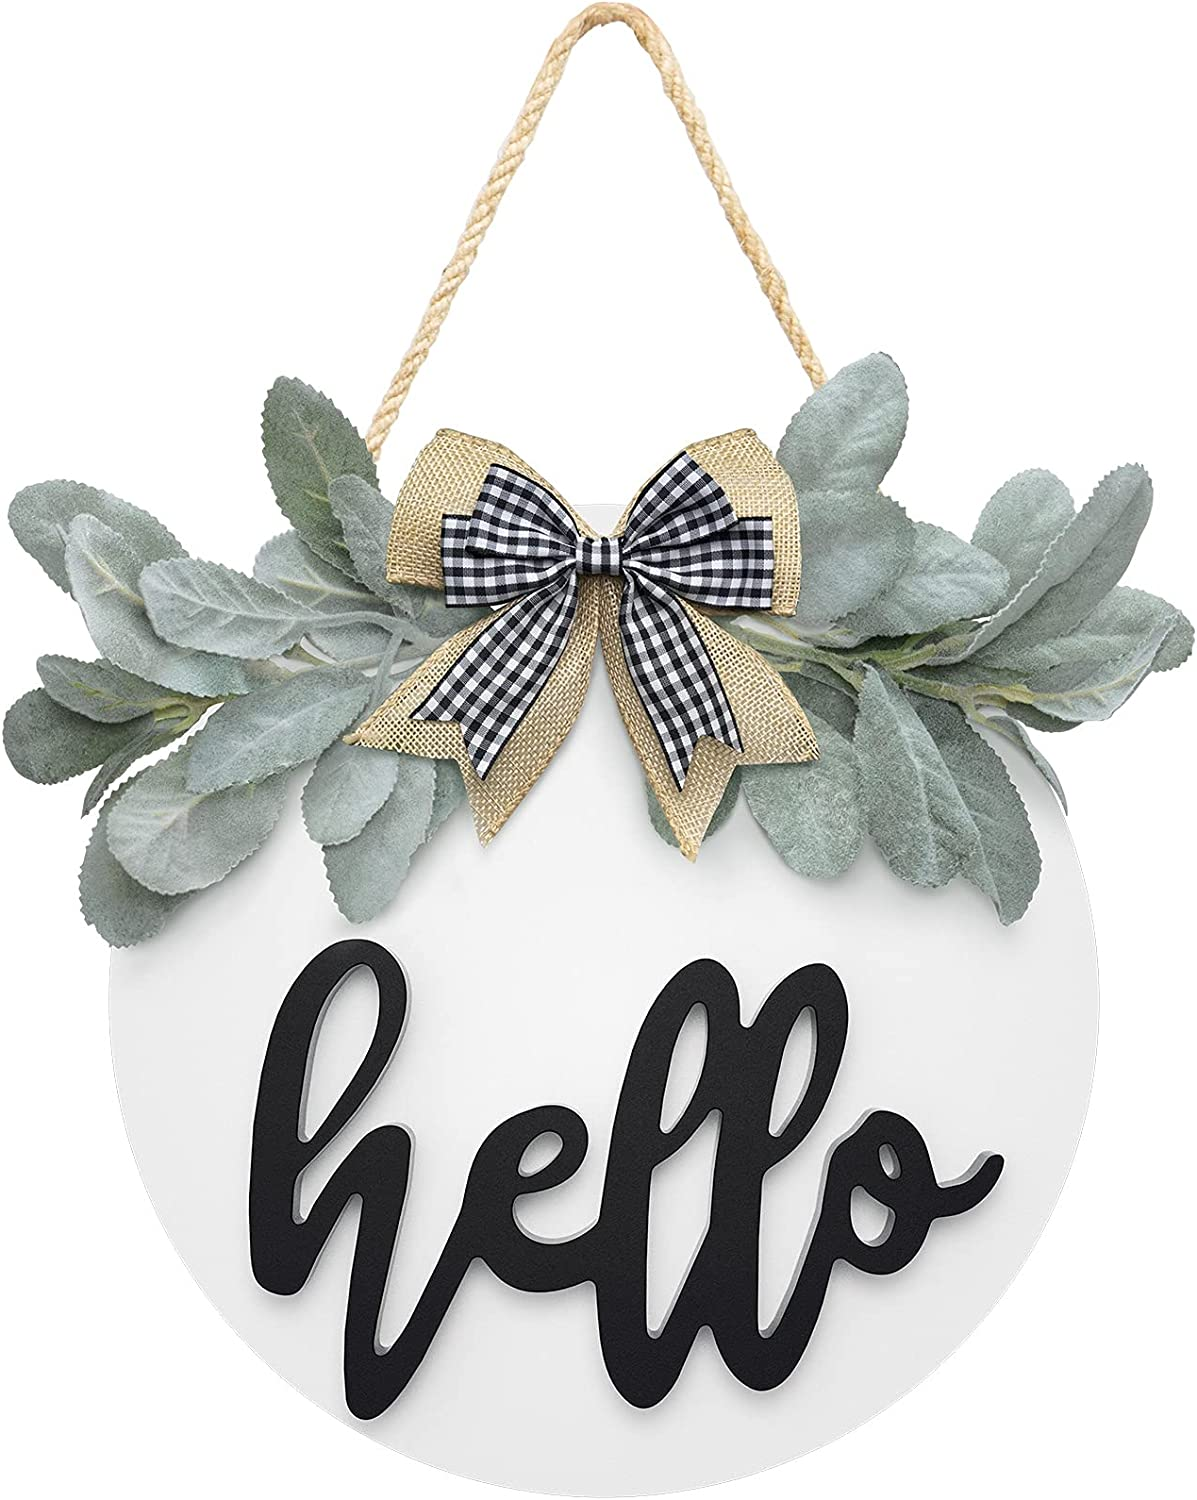 Welcome Hello Door Sign for Front Door Farmhouse Decor with Premium Greenery and Bow White-Wooden Hello Sign for Wreath Rustic Door Hanger, Housewarming for Front Porch Home Decor